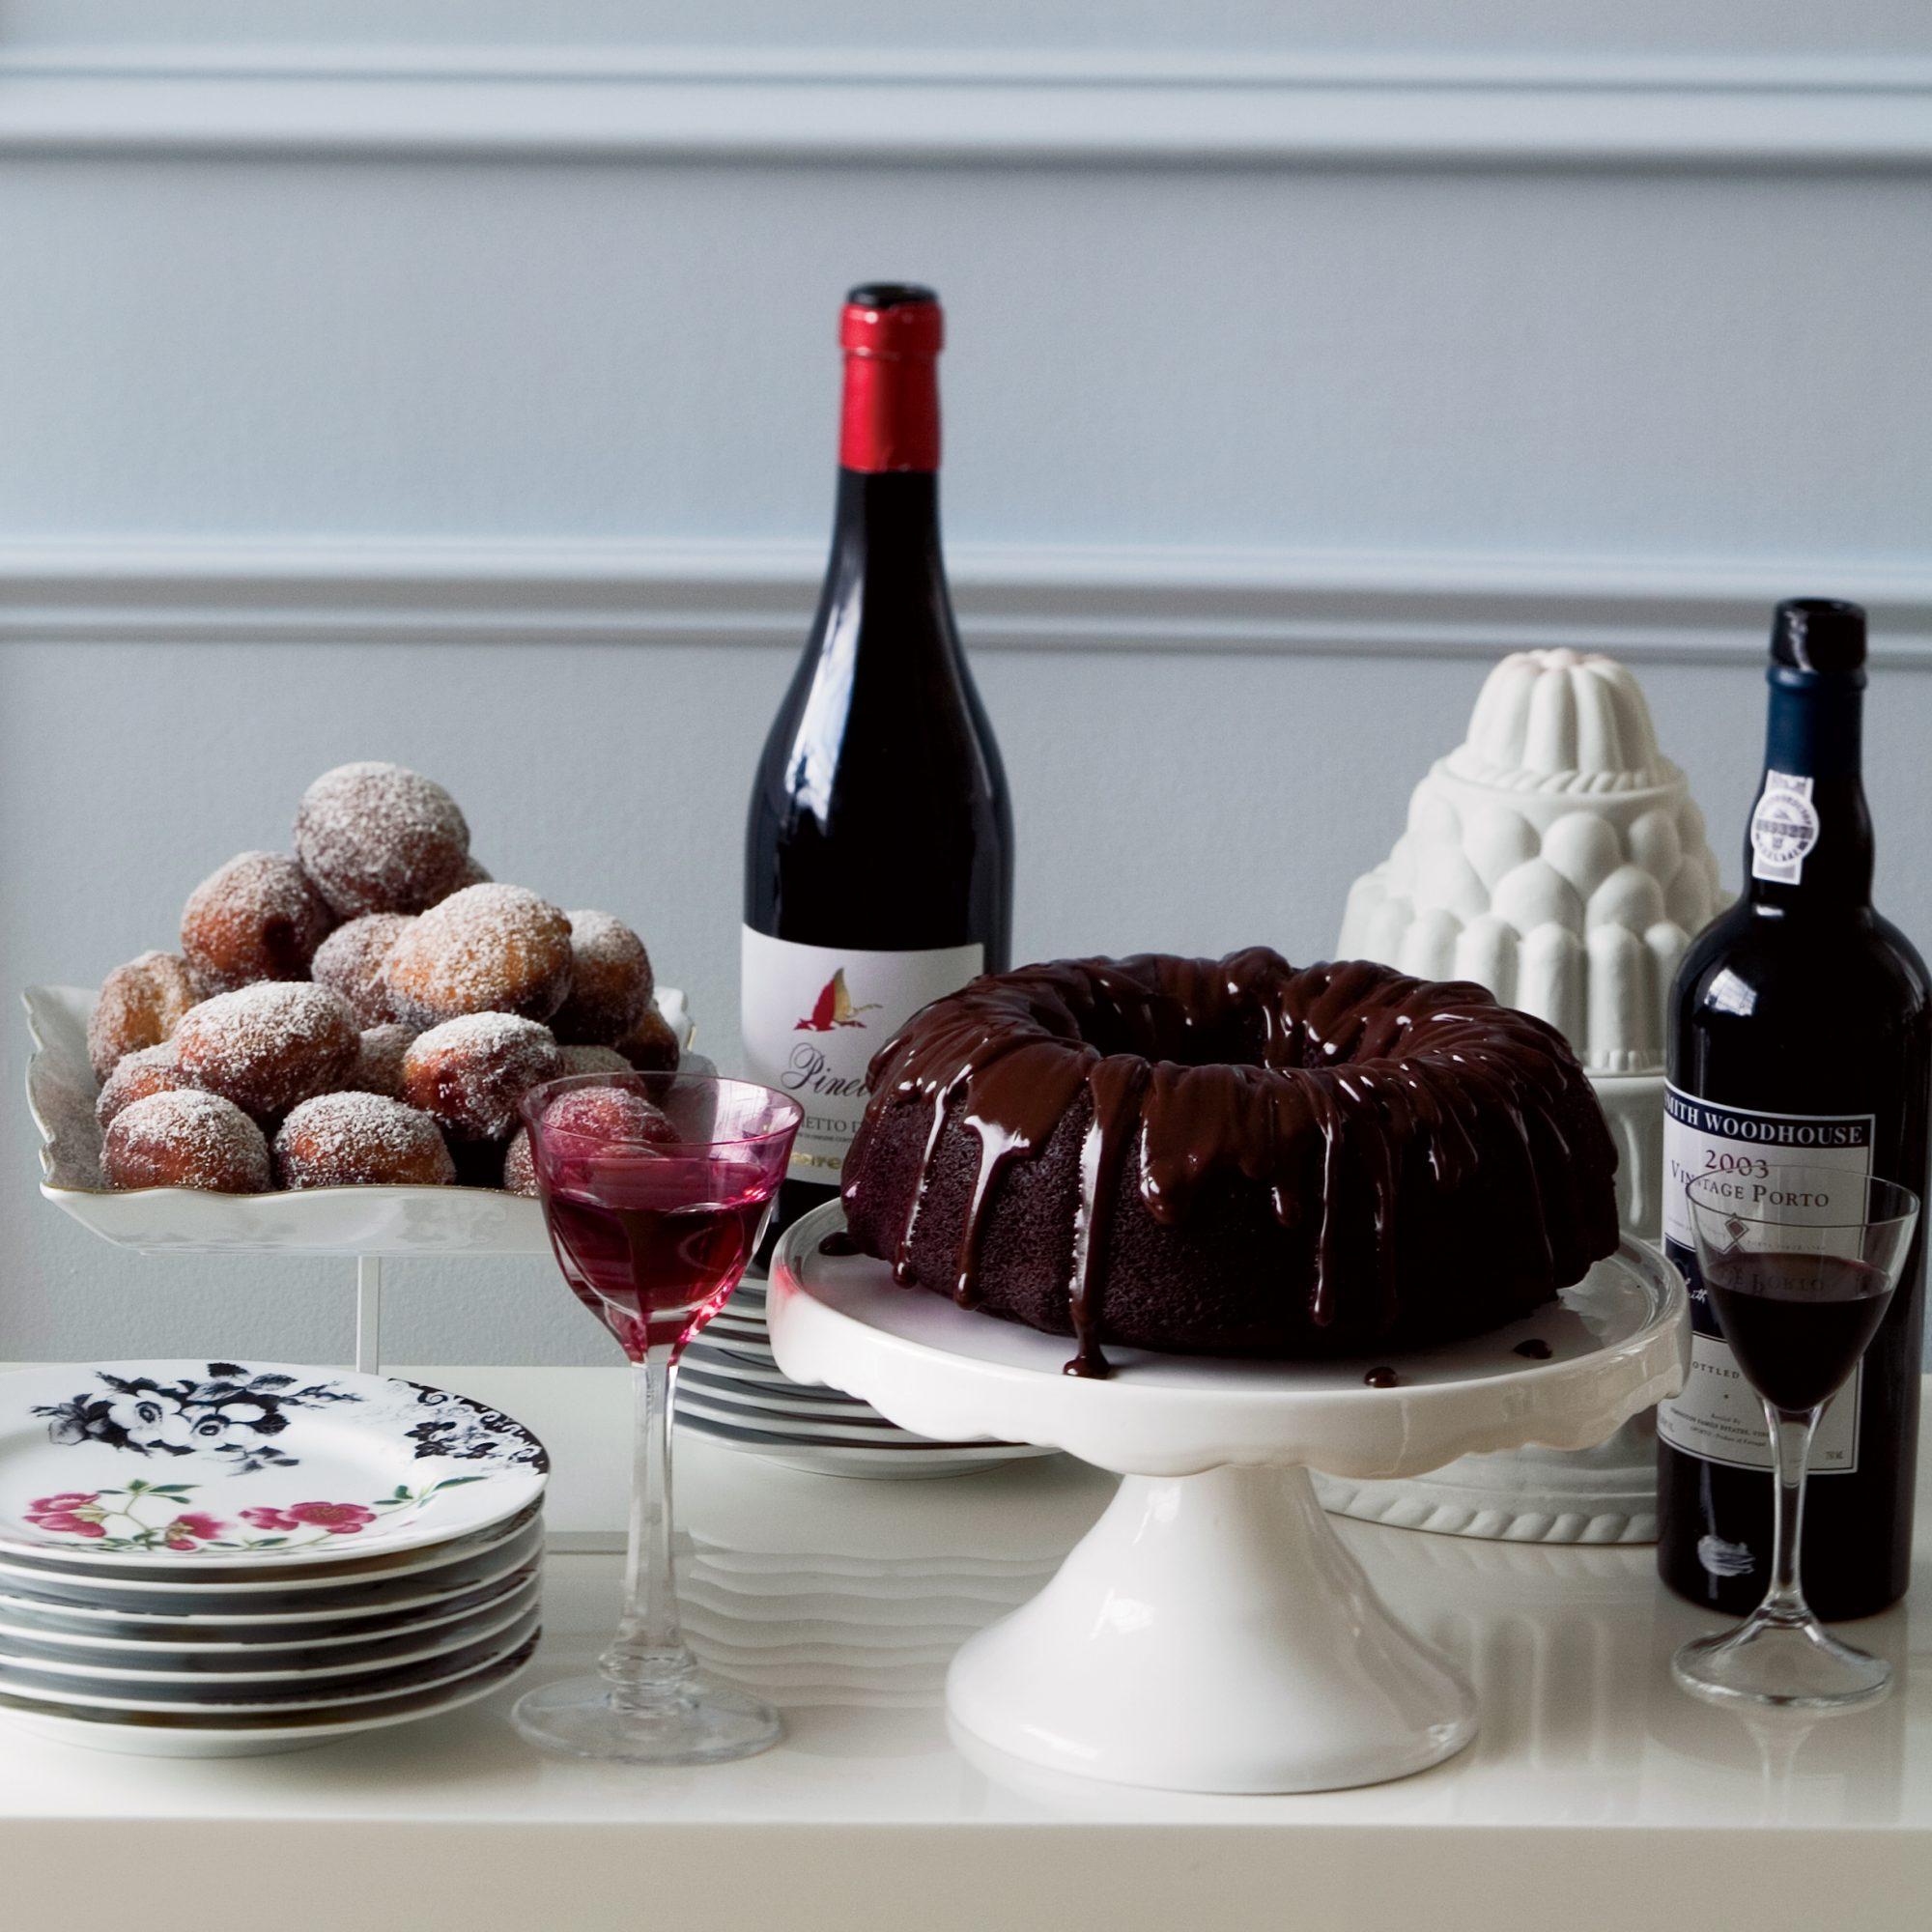 Wine Pairings for Holiday Desserts: Double-Chocolate Bundt Cake with Ganache Glaze